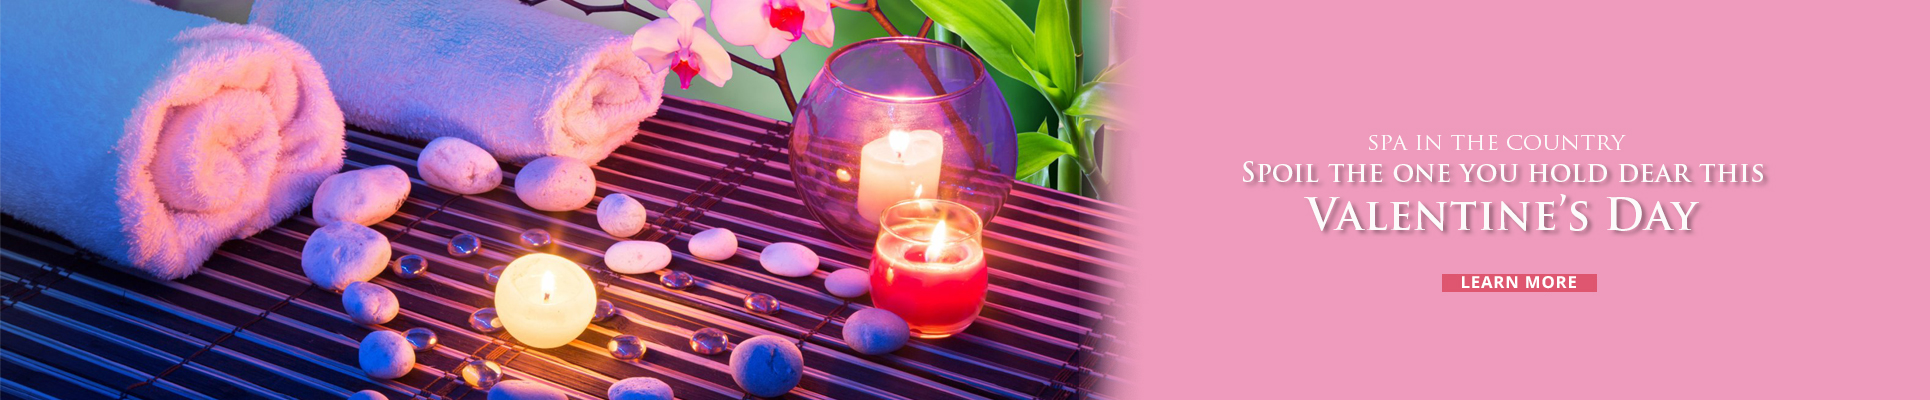 Spa in the Country Valentines Day Treatment Packages Muldersdrifts spas